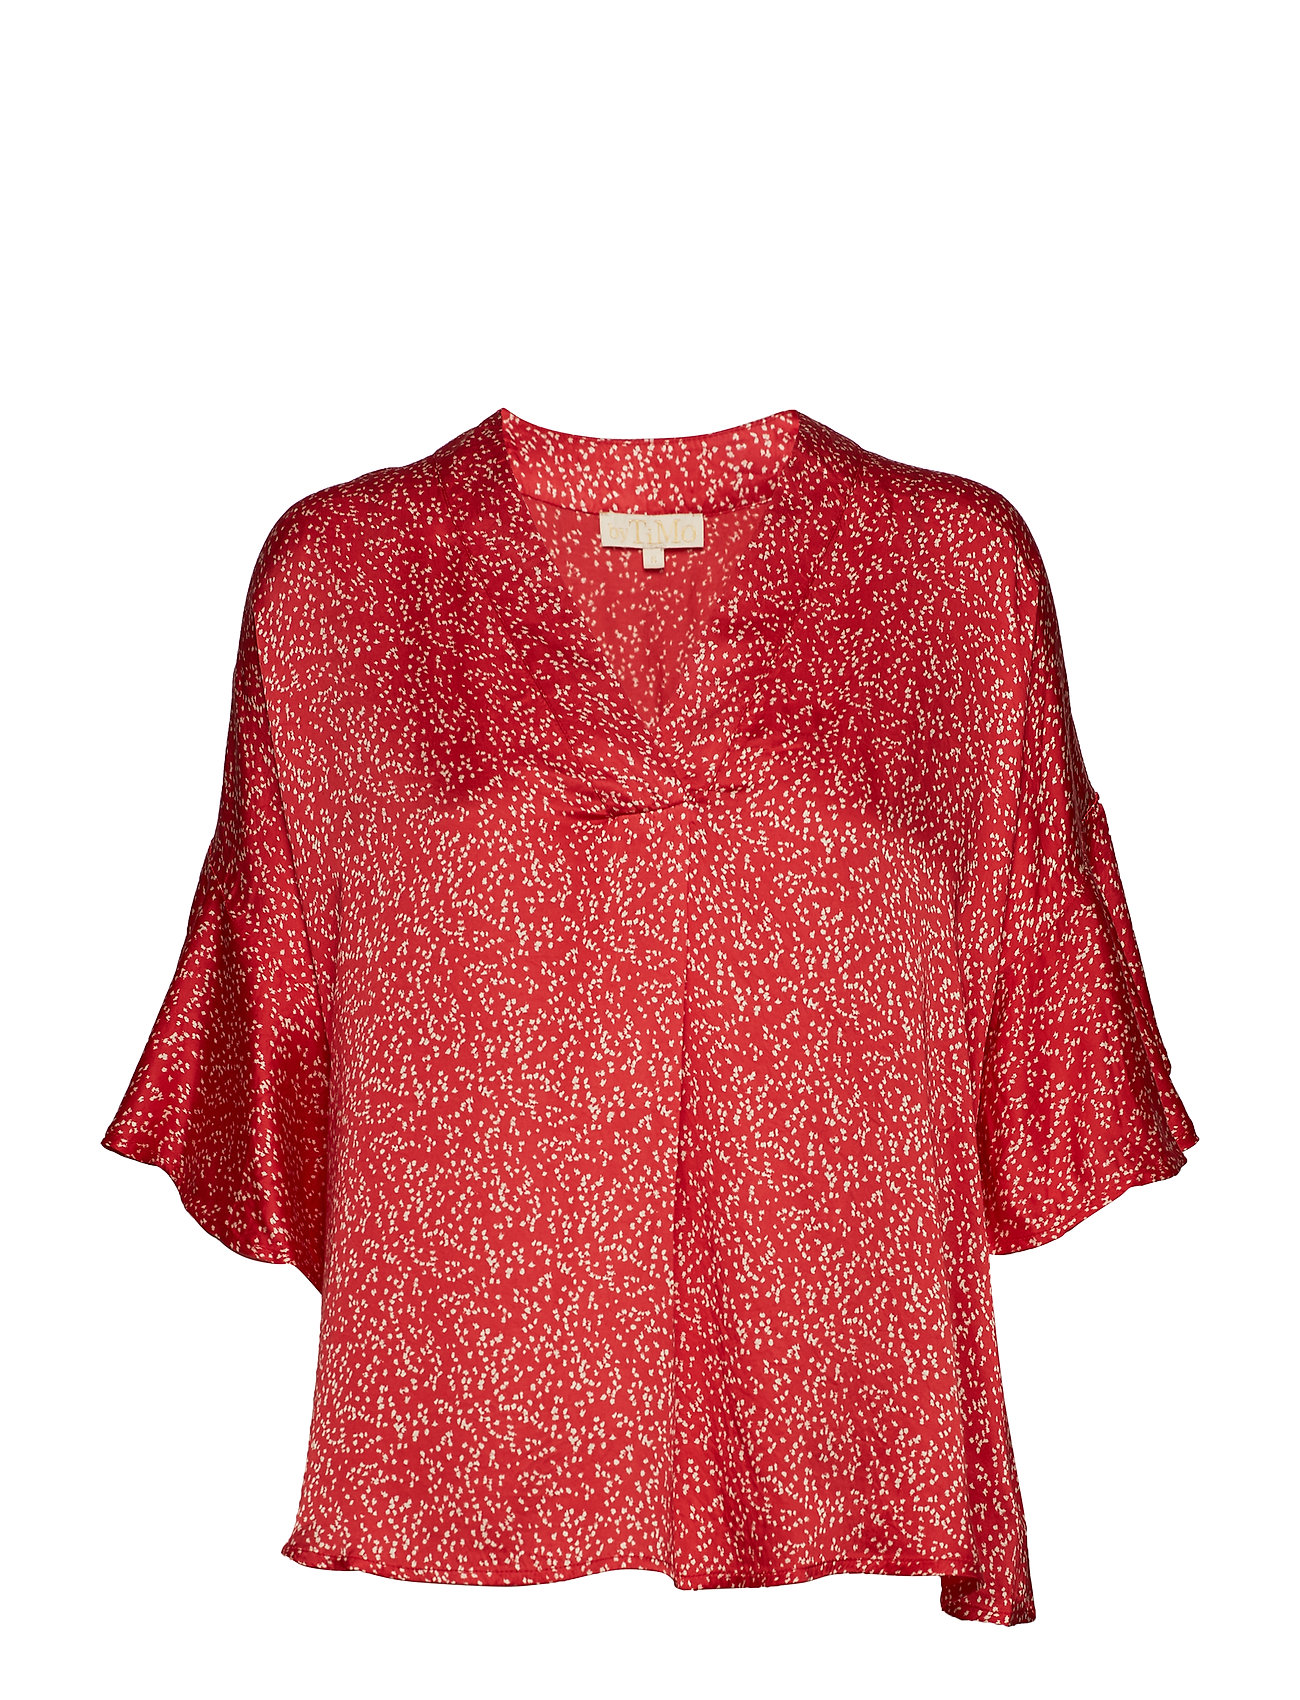 by Ti Mo Shiny Top - LOOSE DOTS